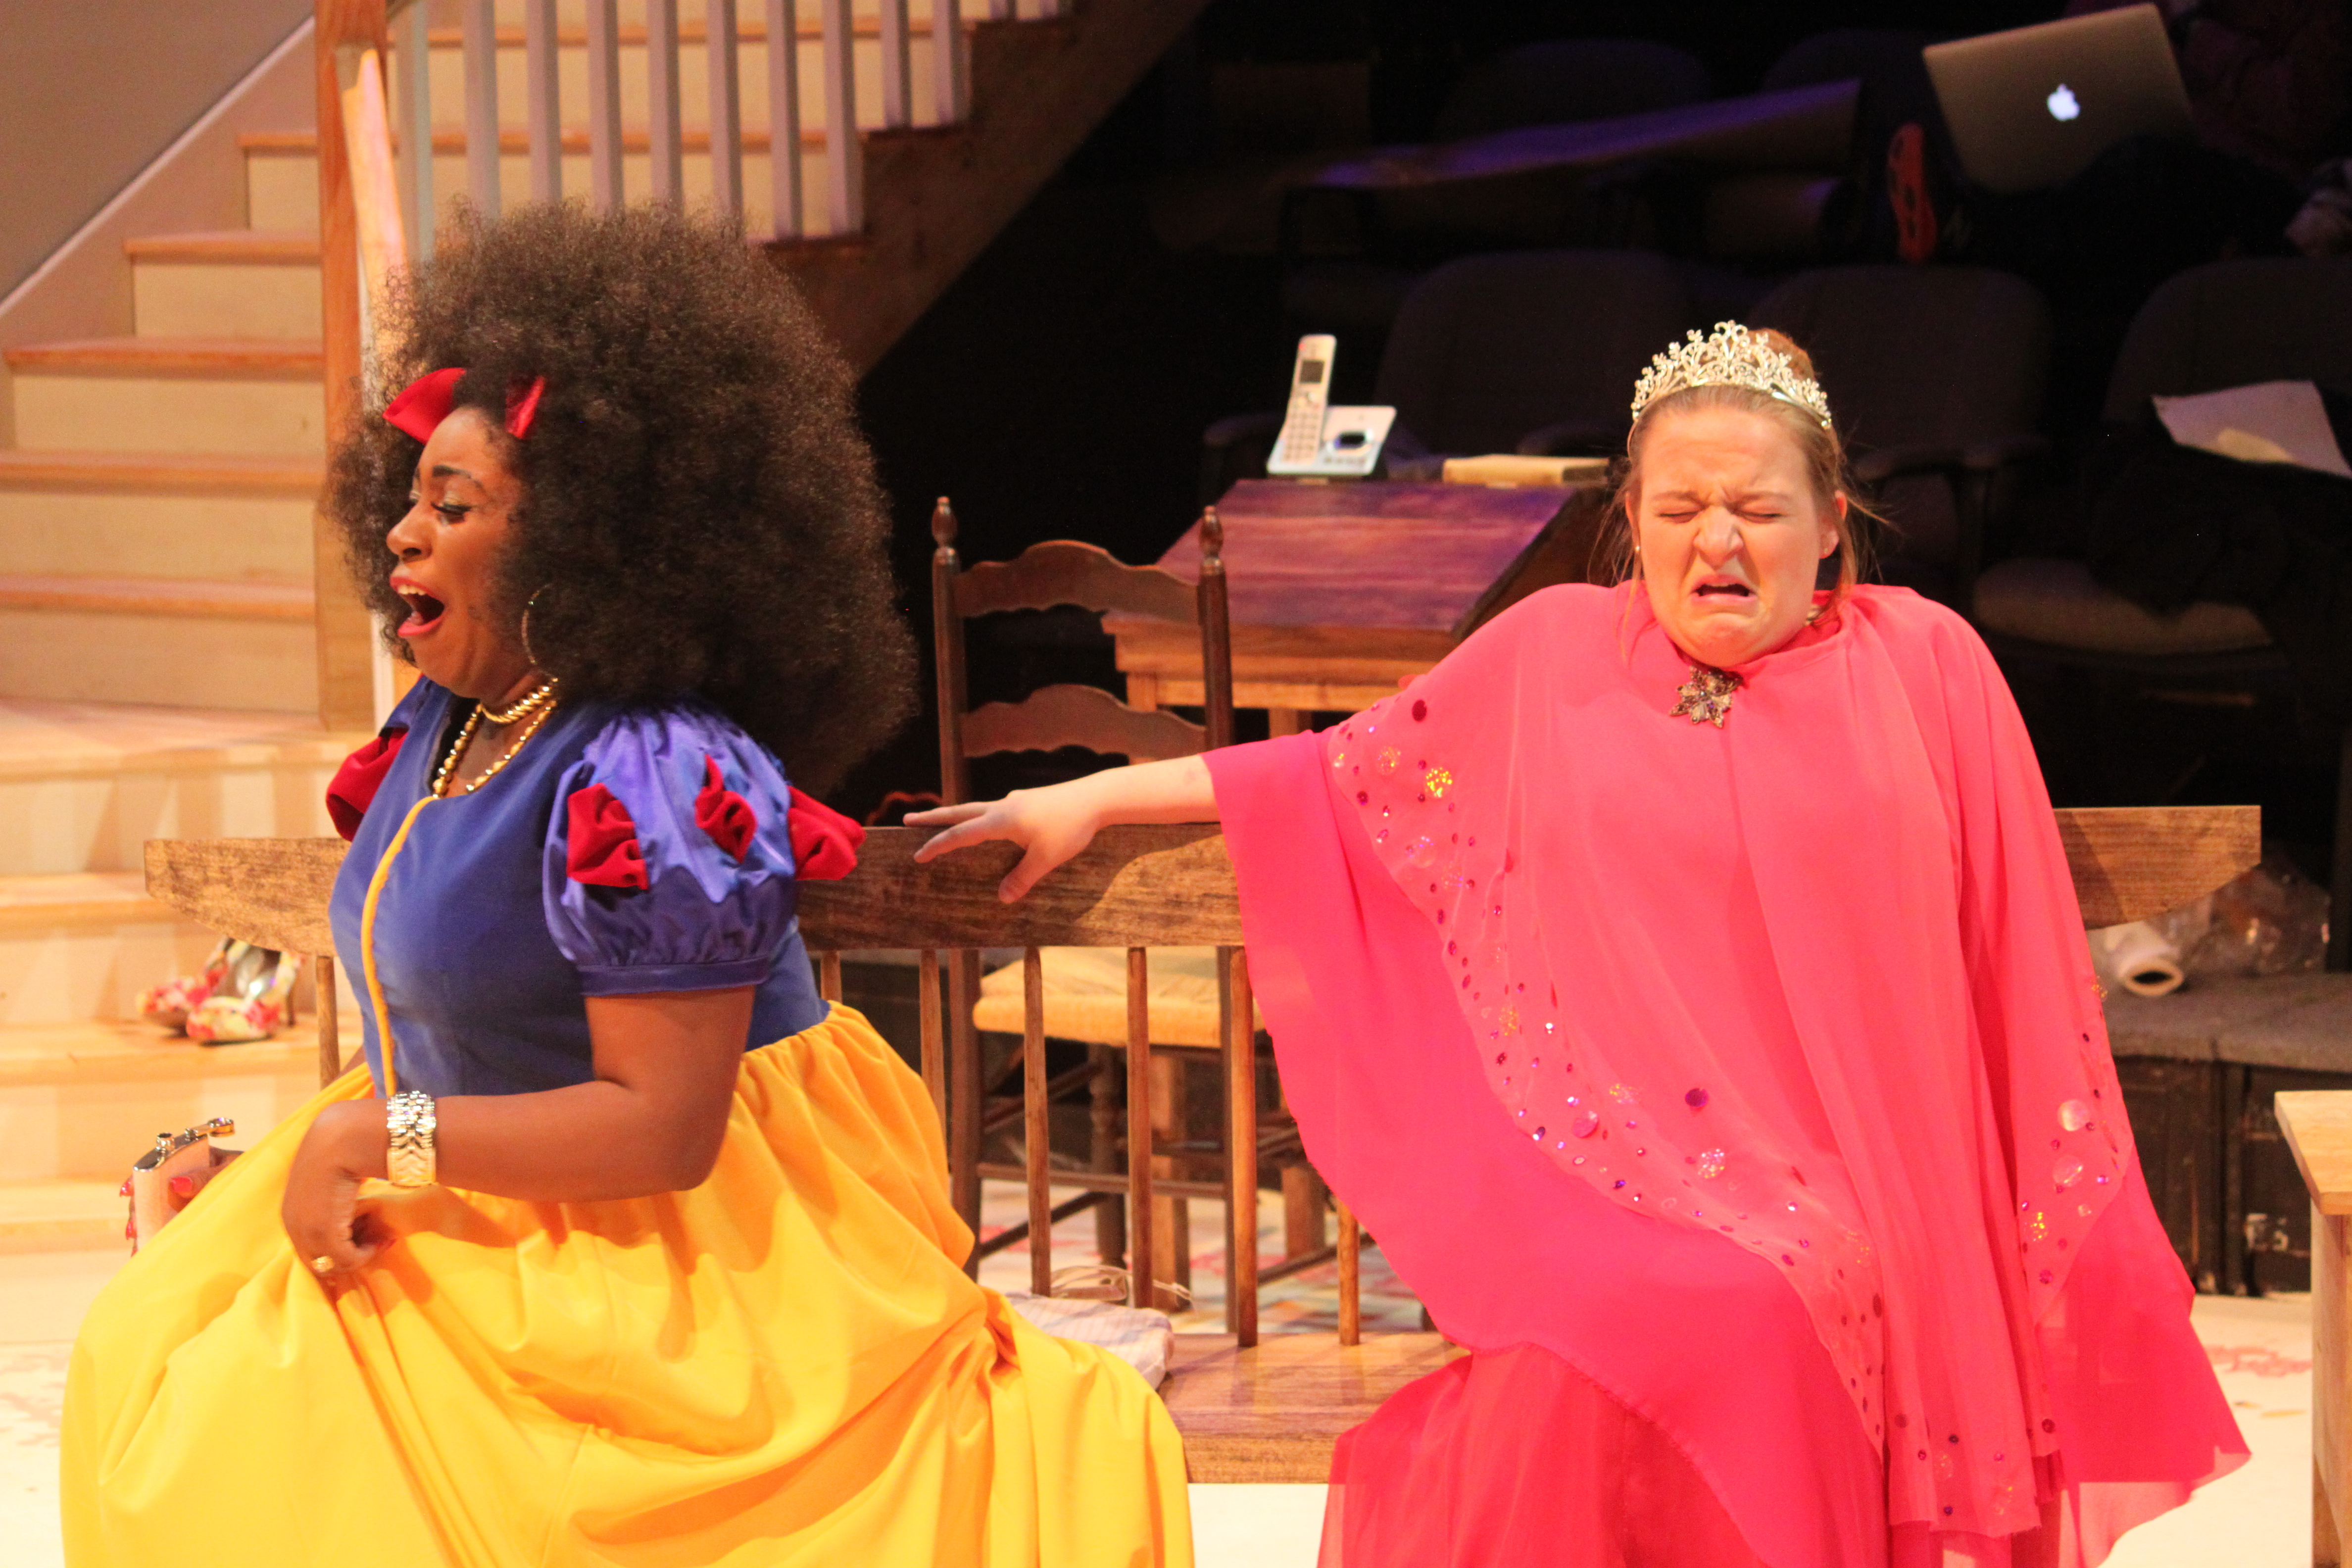 Kim Owen and Jasmine West in Vanya and Sonia and Masha and Spike, 2017